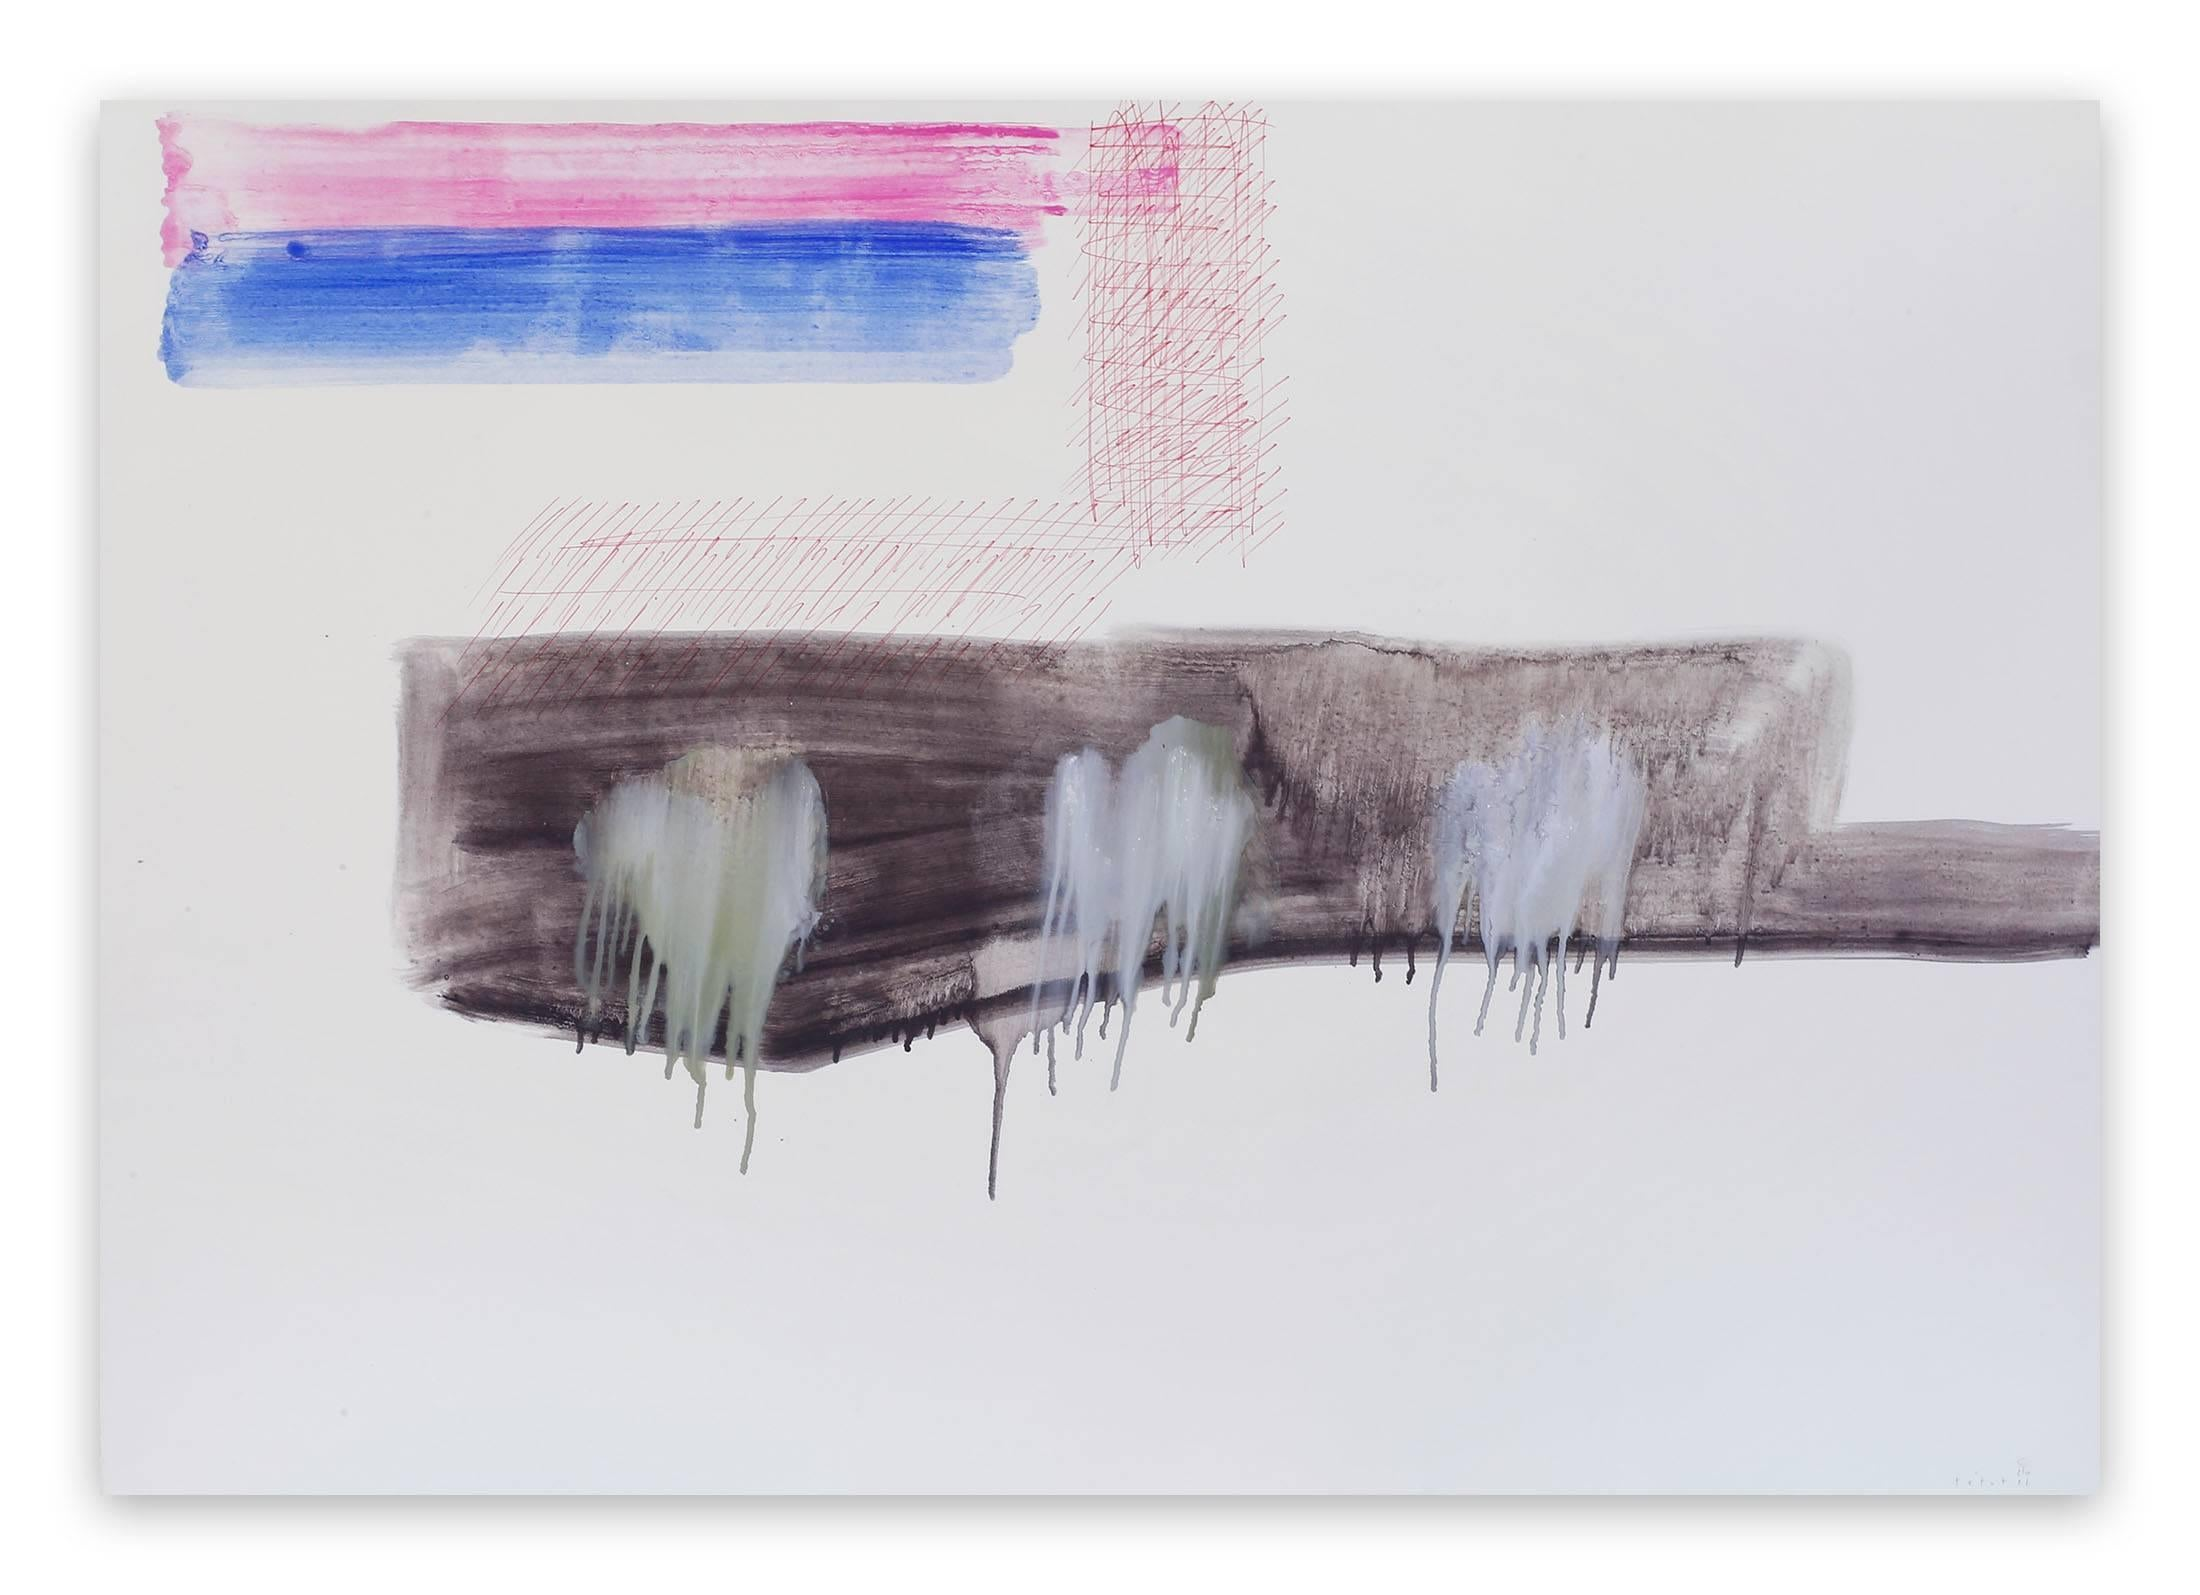 Untitled 8 (Abstract painting)